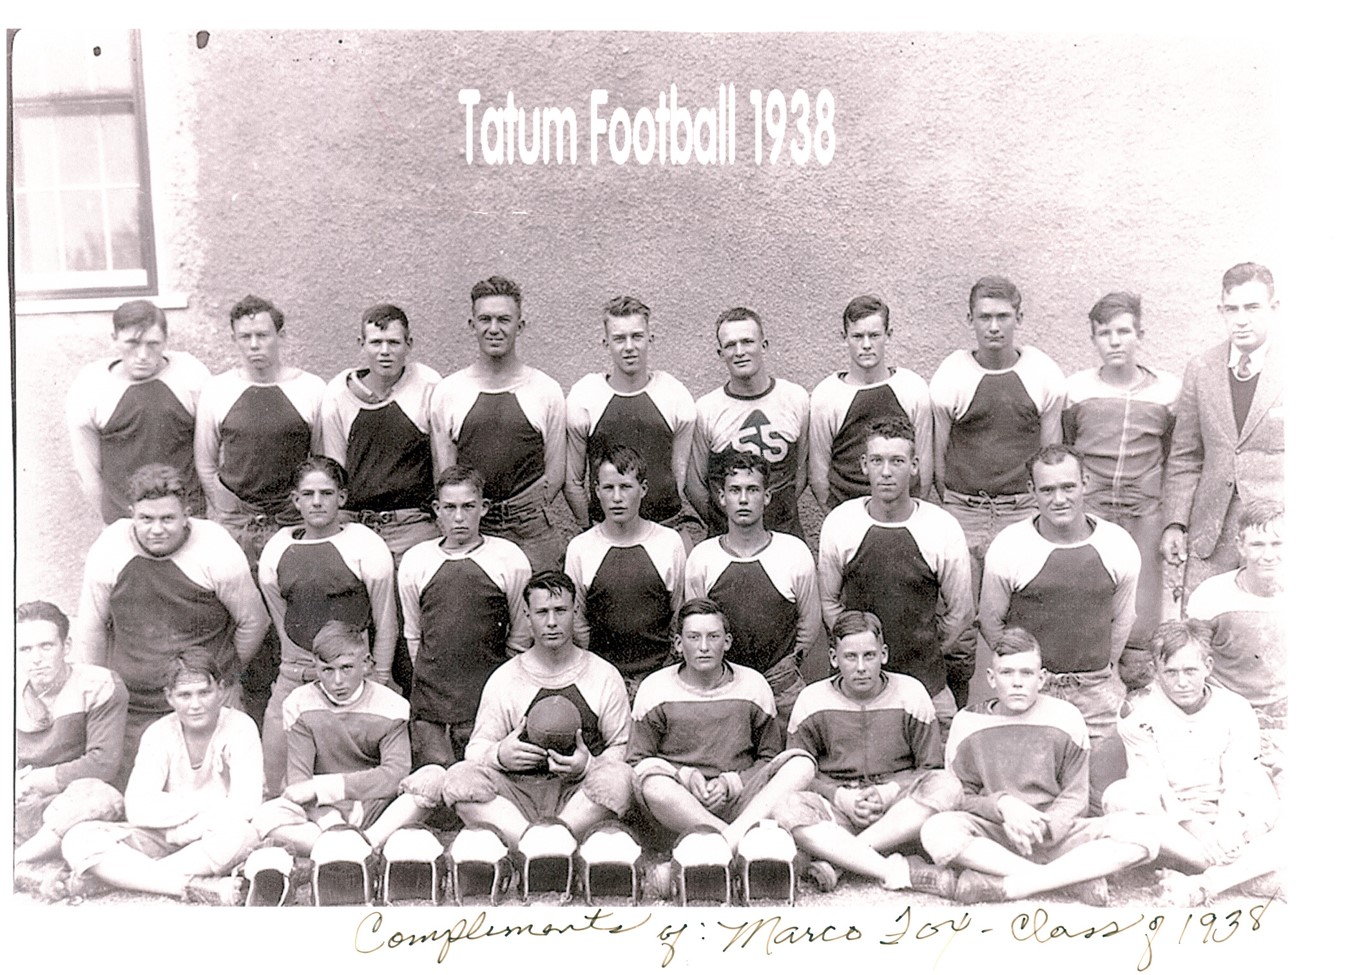 1938 Tatum Football Team - If you can identify anyone please let us know!